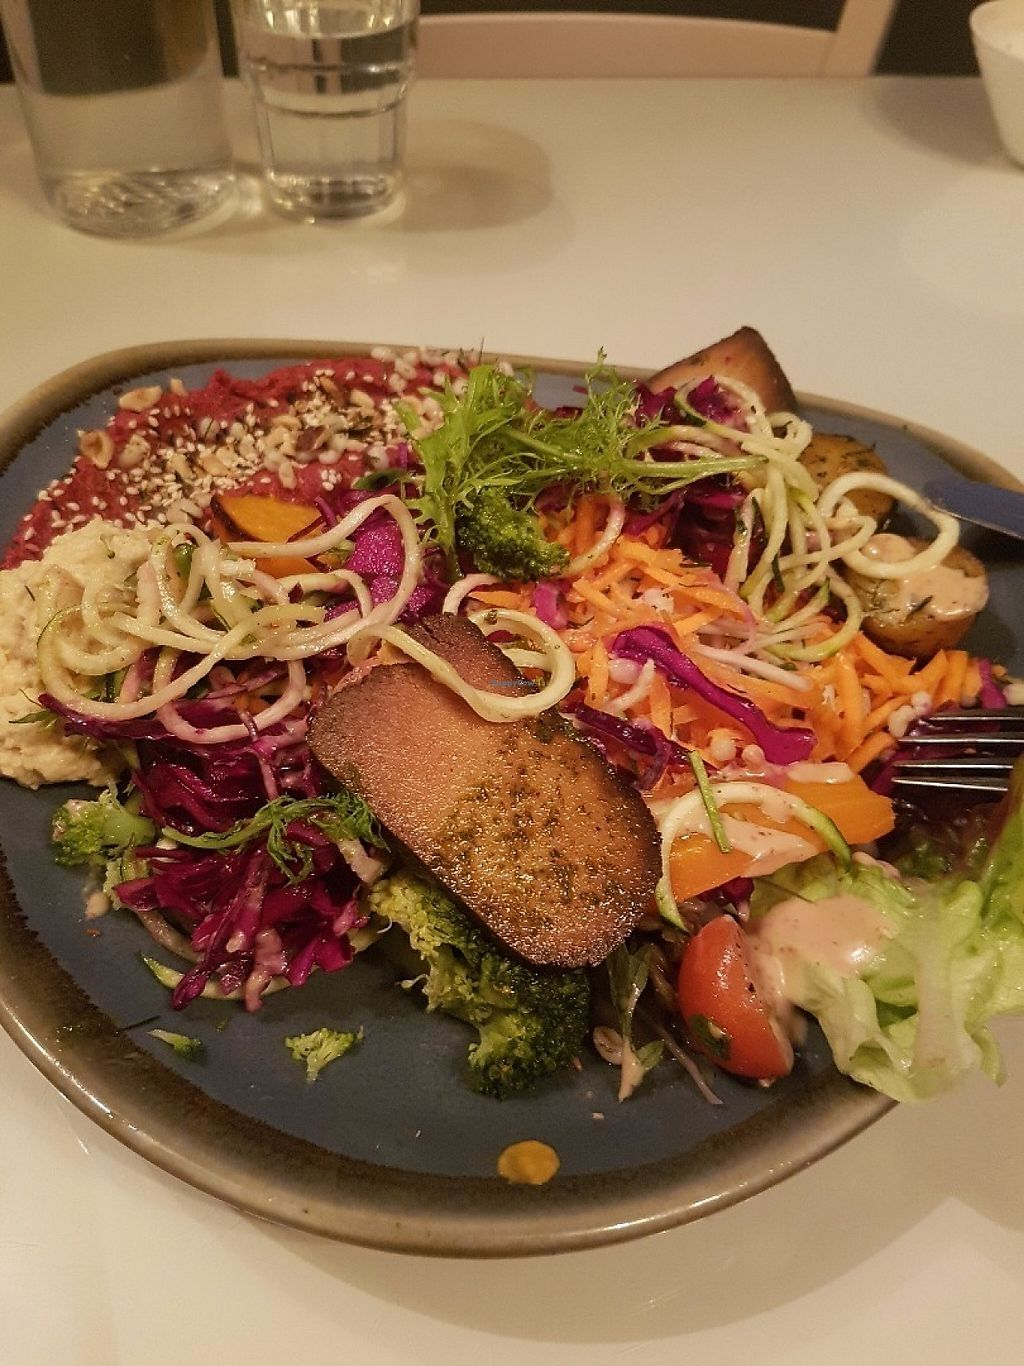 """Photo of The Light House  by <a href=""""/members/profile/DonnaKeady"""">DonnaKeady</a> <br/>Fresh salad with Tofo so tasty and filling <br/> May 27, 2017  - <a href='/contact/abuse/image/43959/263116'>Report</a>"""